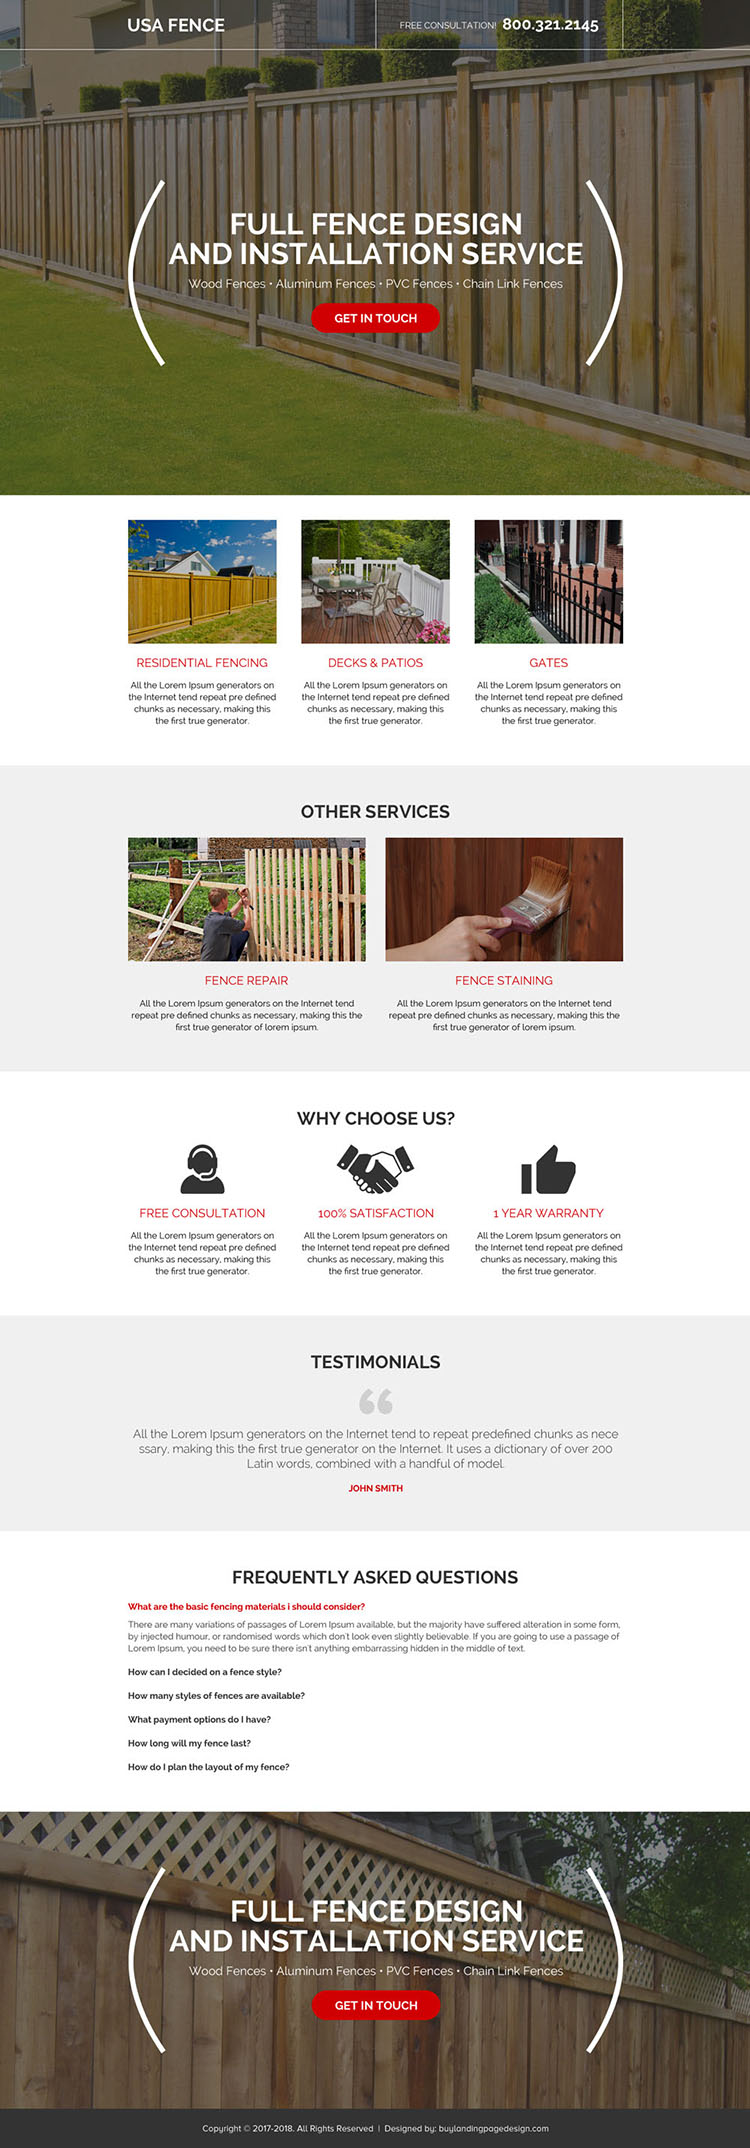 full fence design and installations service landing page design